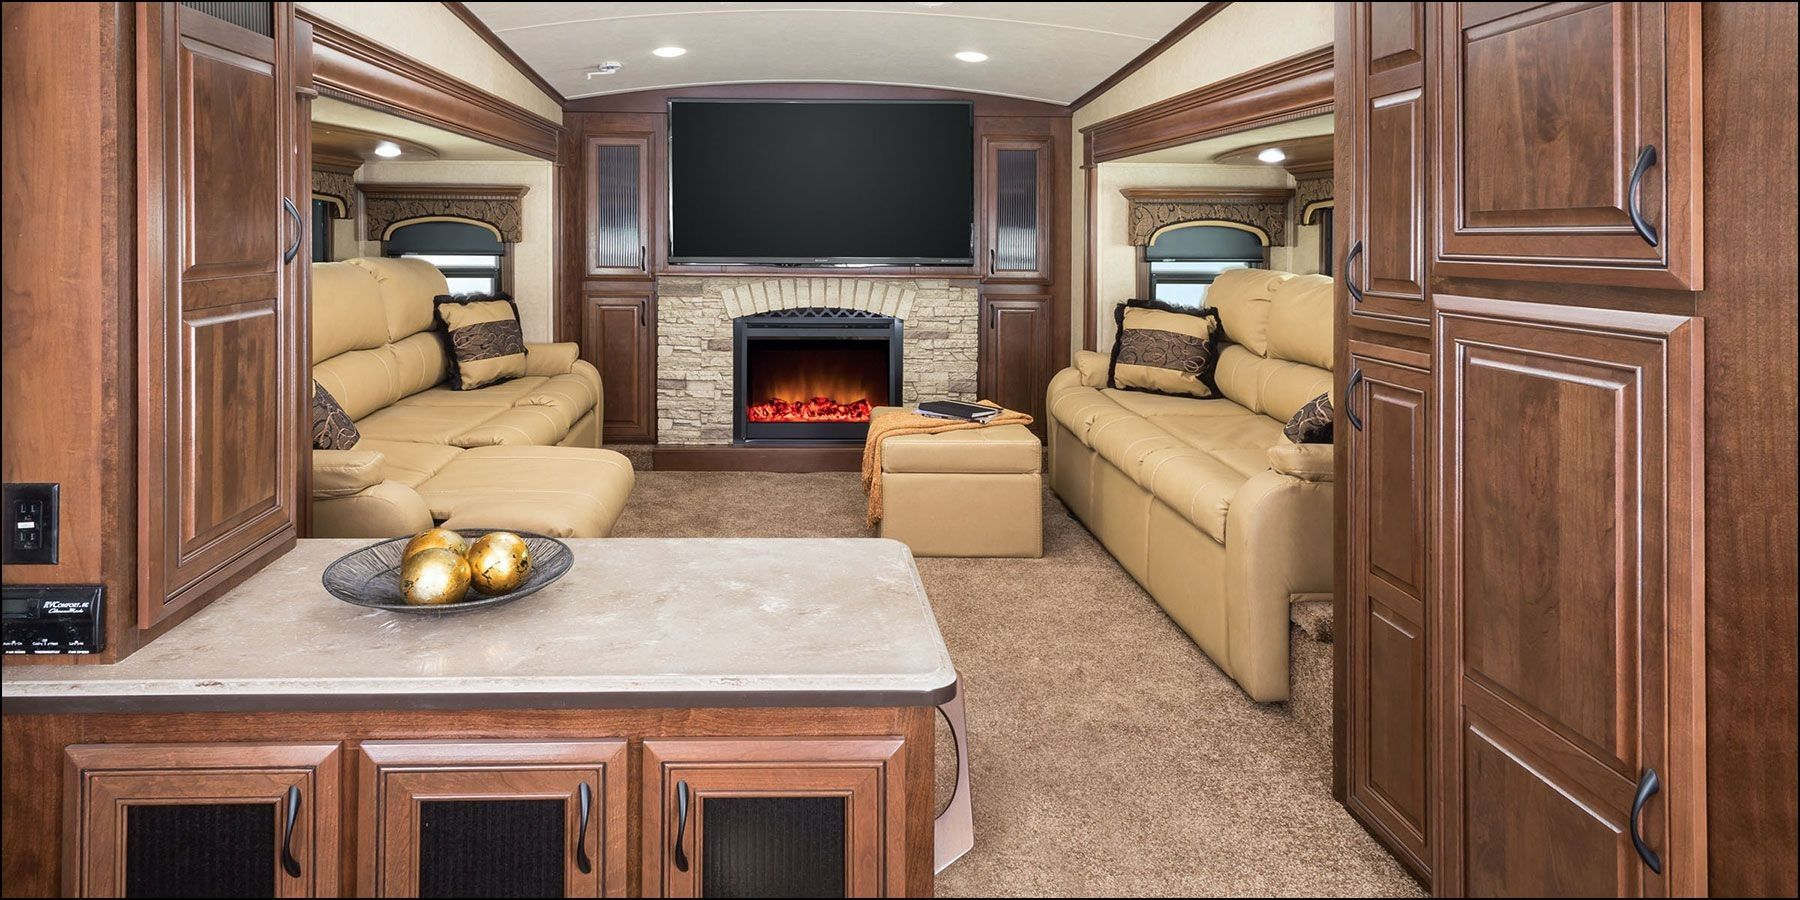 Fifth Wheel Campers With Front Living Rooms  Wheels  Tires Pleasing Fifth Wheel Campers With Front Living Rooms Review